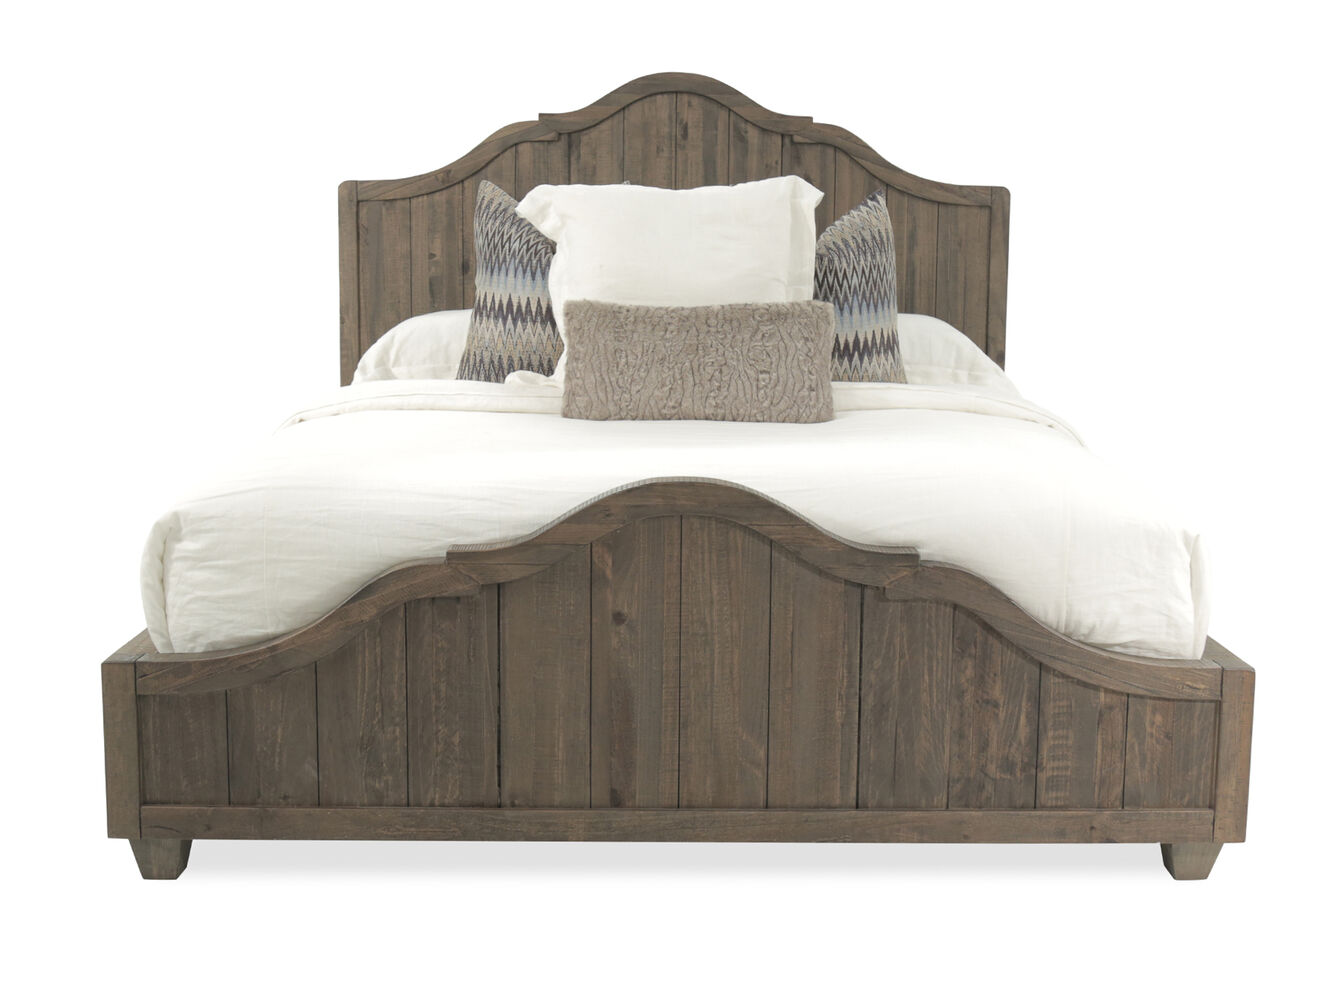 64 Quot Cottage Planked Panel Bed In Natural Umber Mathis